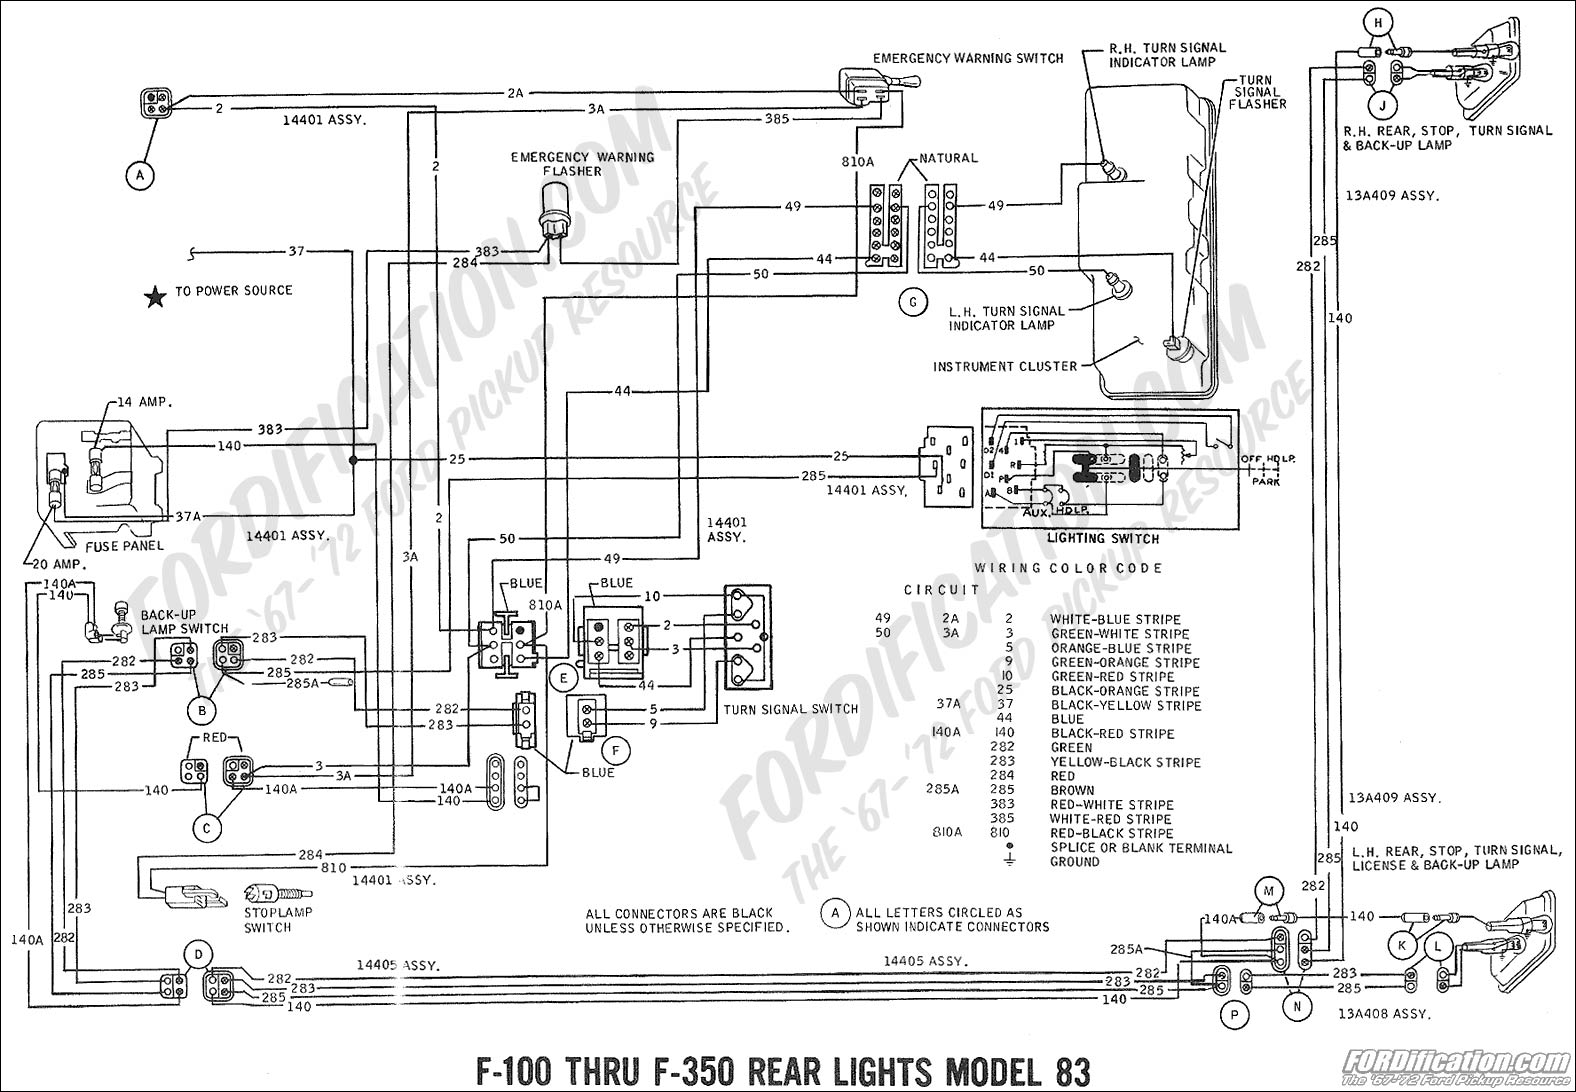 Schematics h on lights wiring diagram for 1997 cadillac